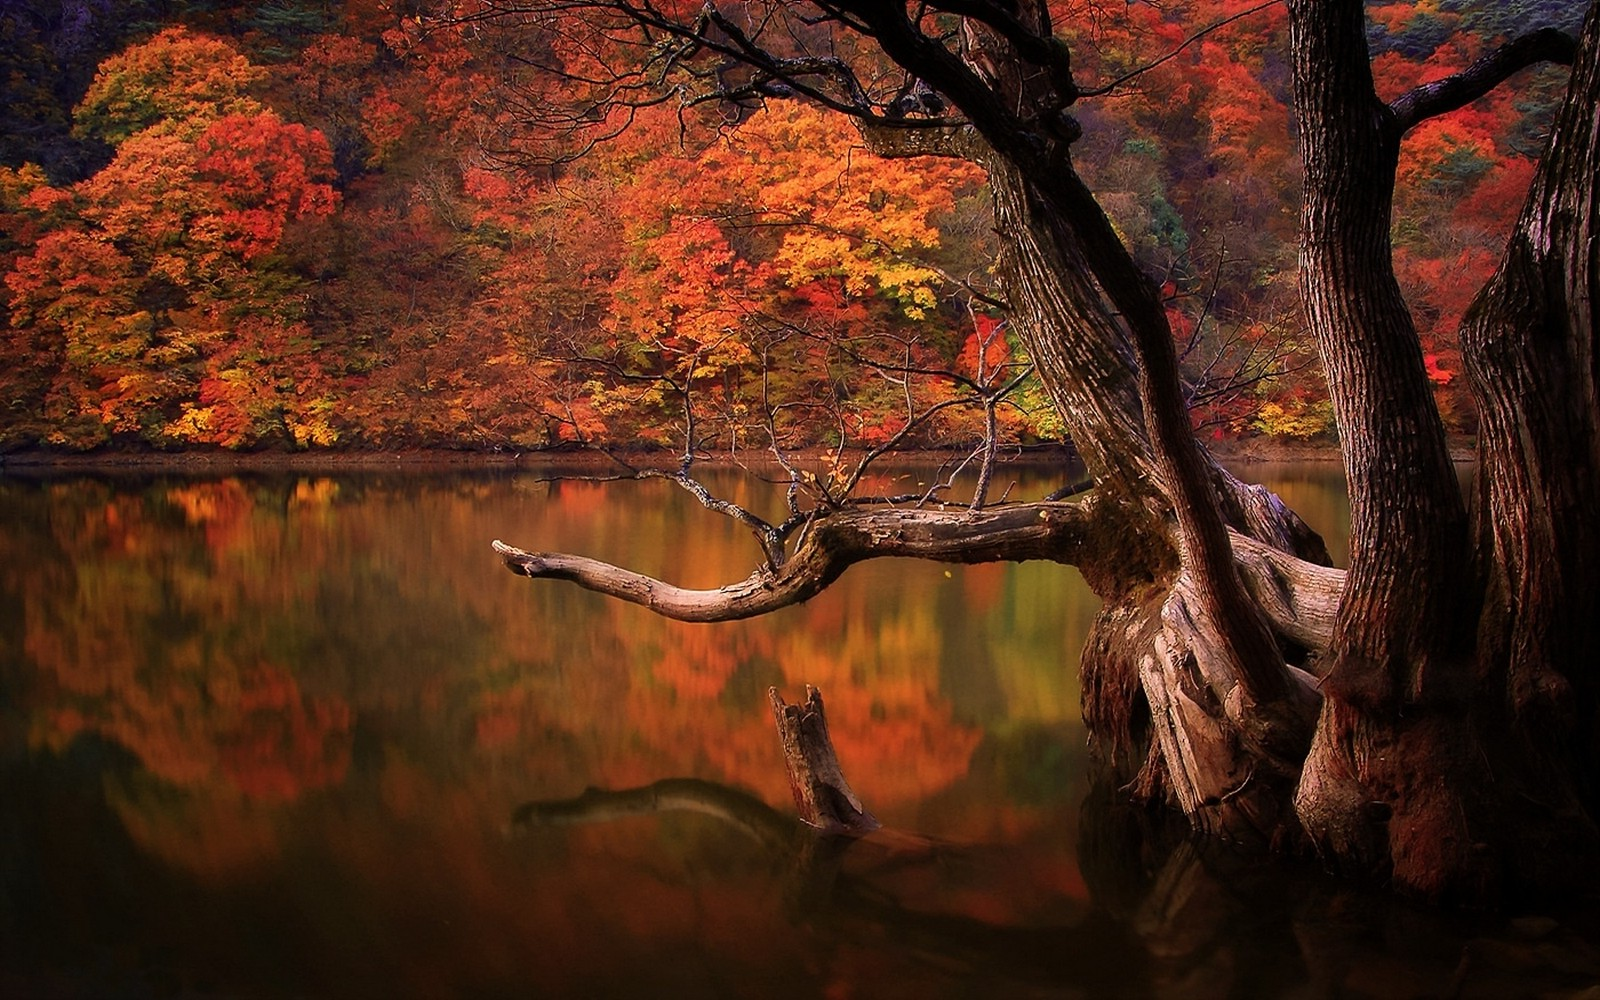 lake, Fall, Forest, Dead Trees, Reflection, Nature, South